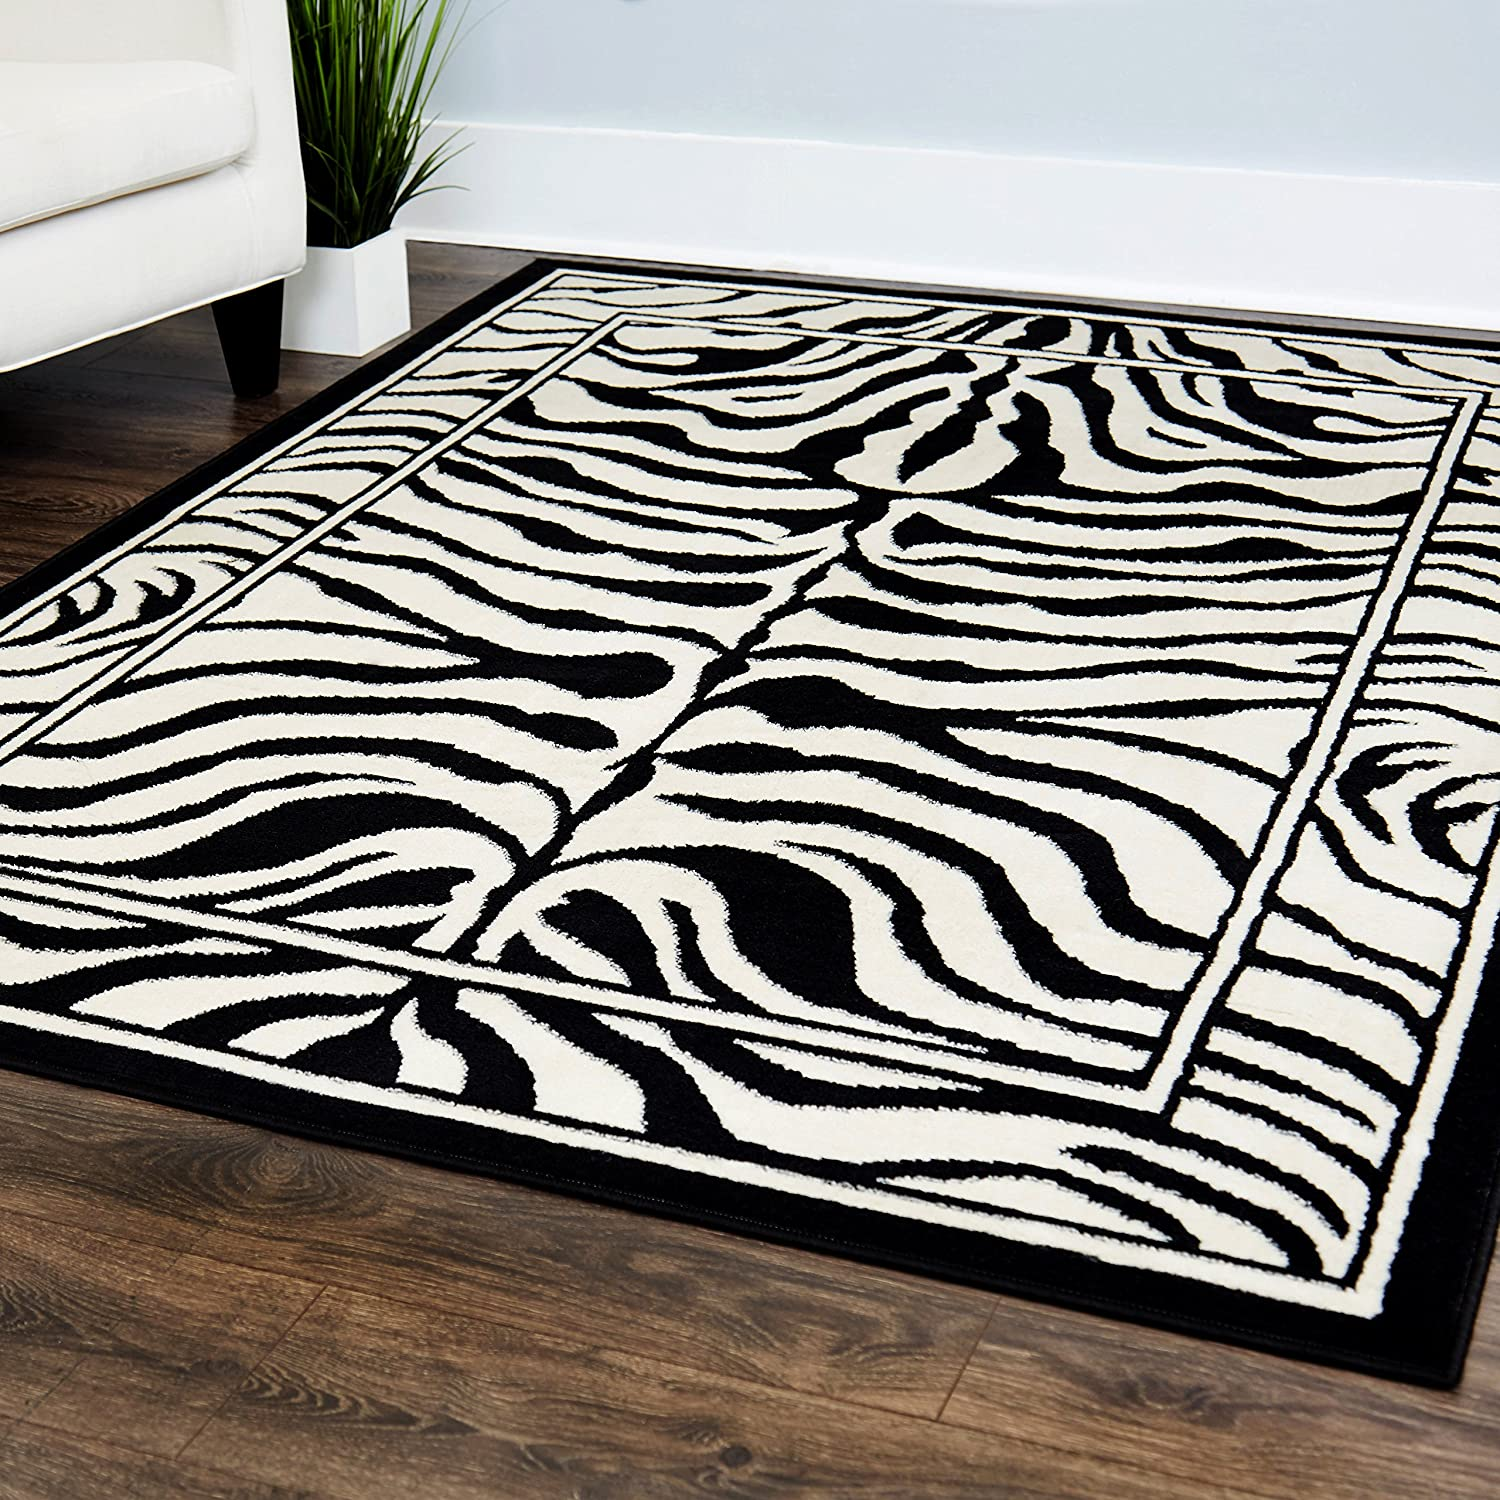 "Home Dynamix Zone Sabra Area Rug 21""x35"", Graphic/Print Black"